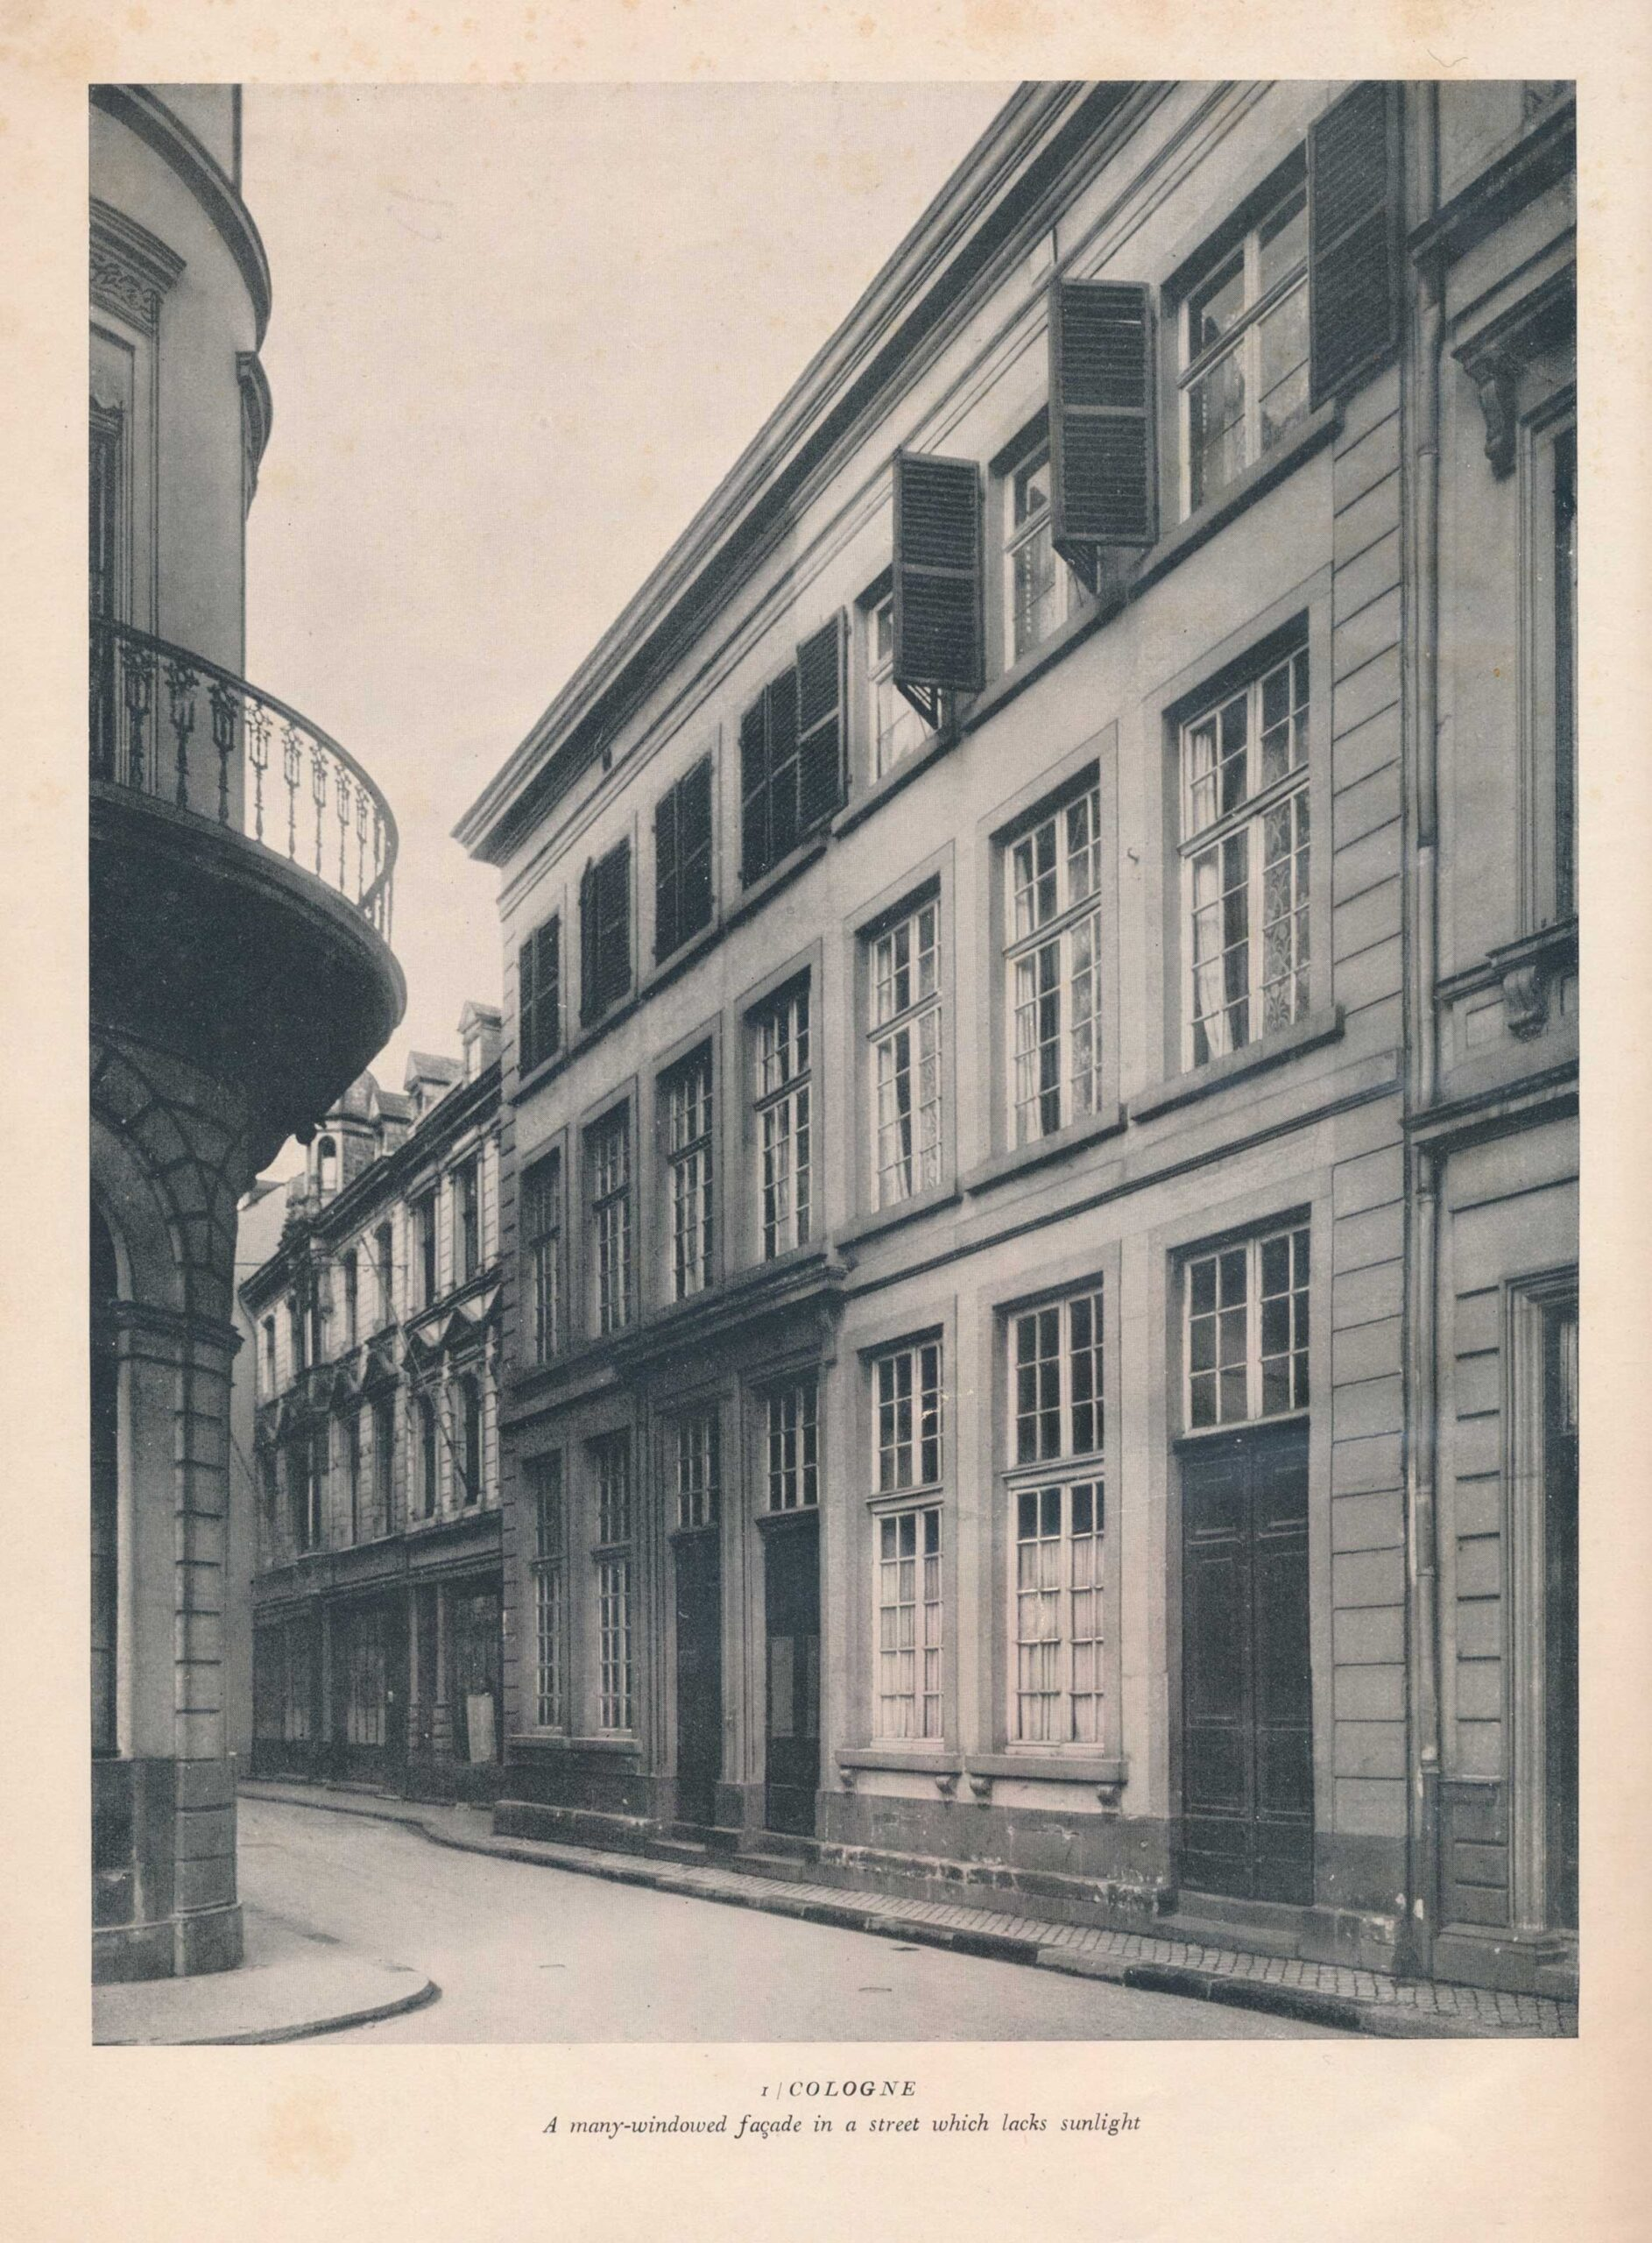 Werner Hegemann, Façades: Fronts of Old and Modern Business and Dwelling Houses, 1929. In his collection of photographs of buildings, Hegemann was concerned about the street picture composed of varied façades. This illustration was chosen for his frontispiece, showing a building in Cologne with large windows to compensate for overshadowing of other buildings. Designs of this type, derived from the work of Karl Friedrich Schinkel, experienced a revival of popularity in Germany and England in the 1920s.